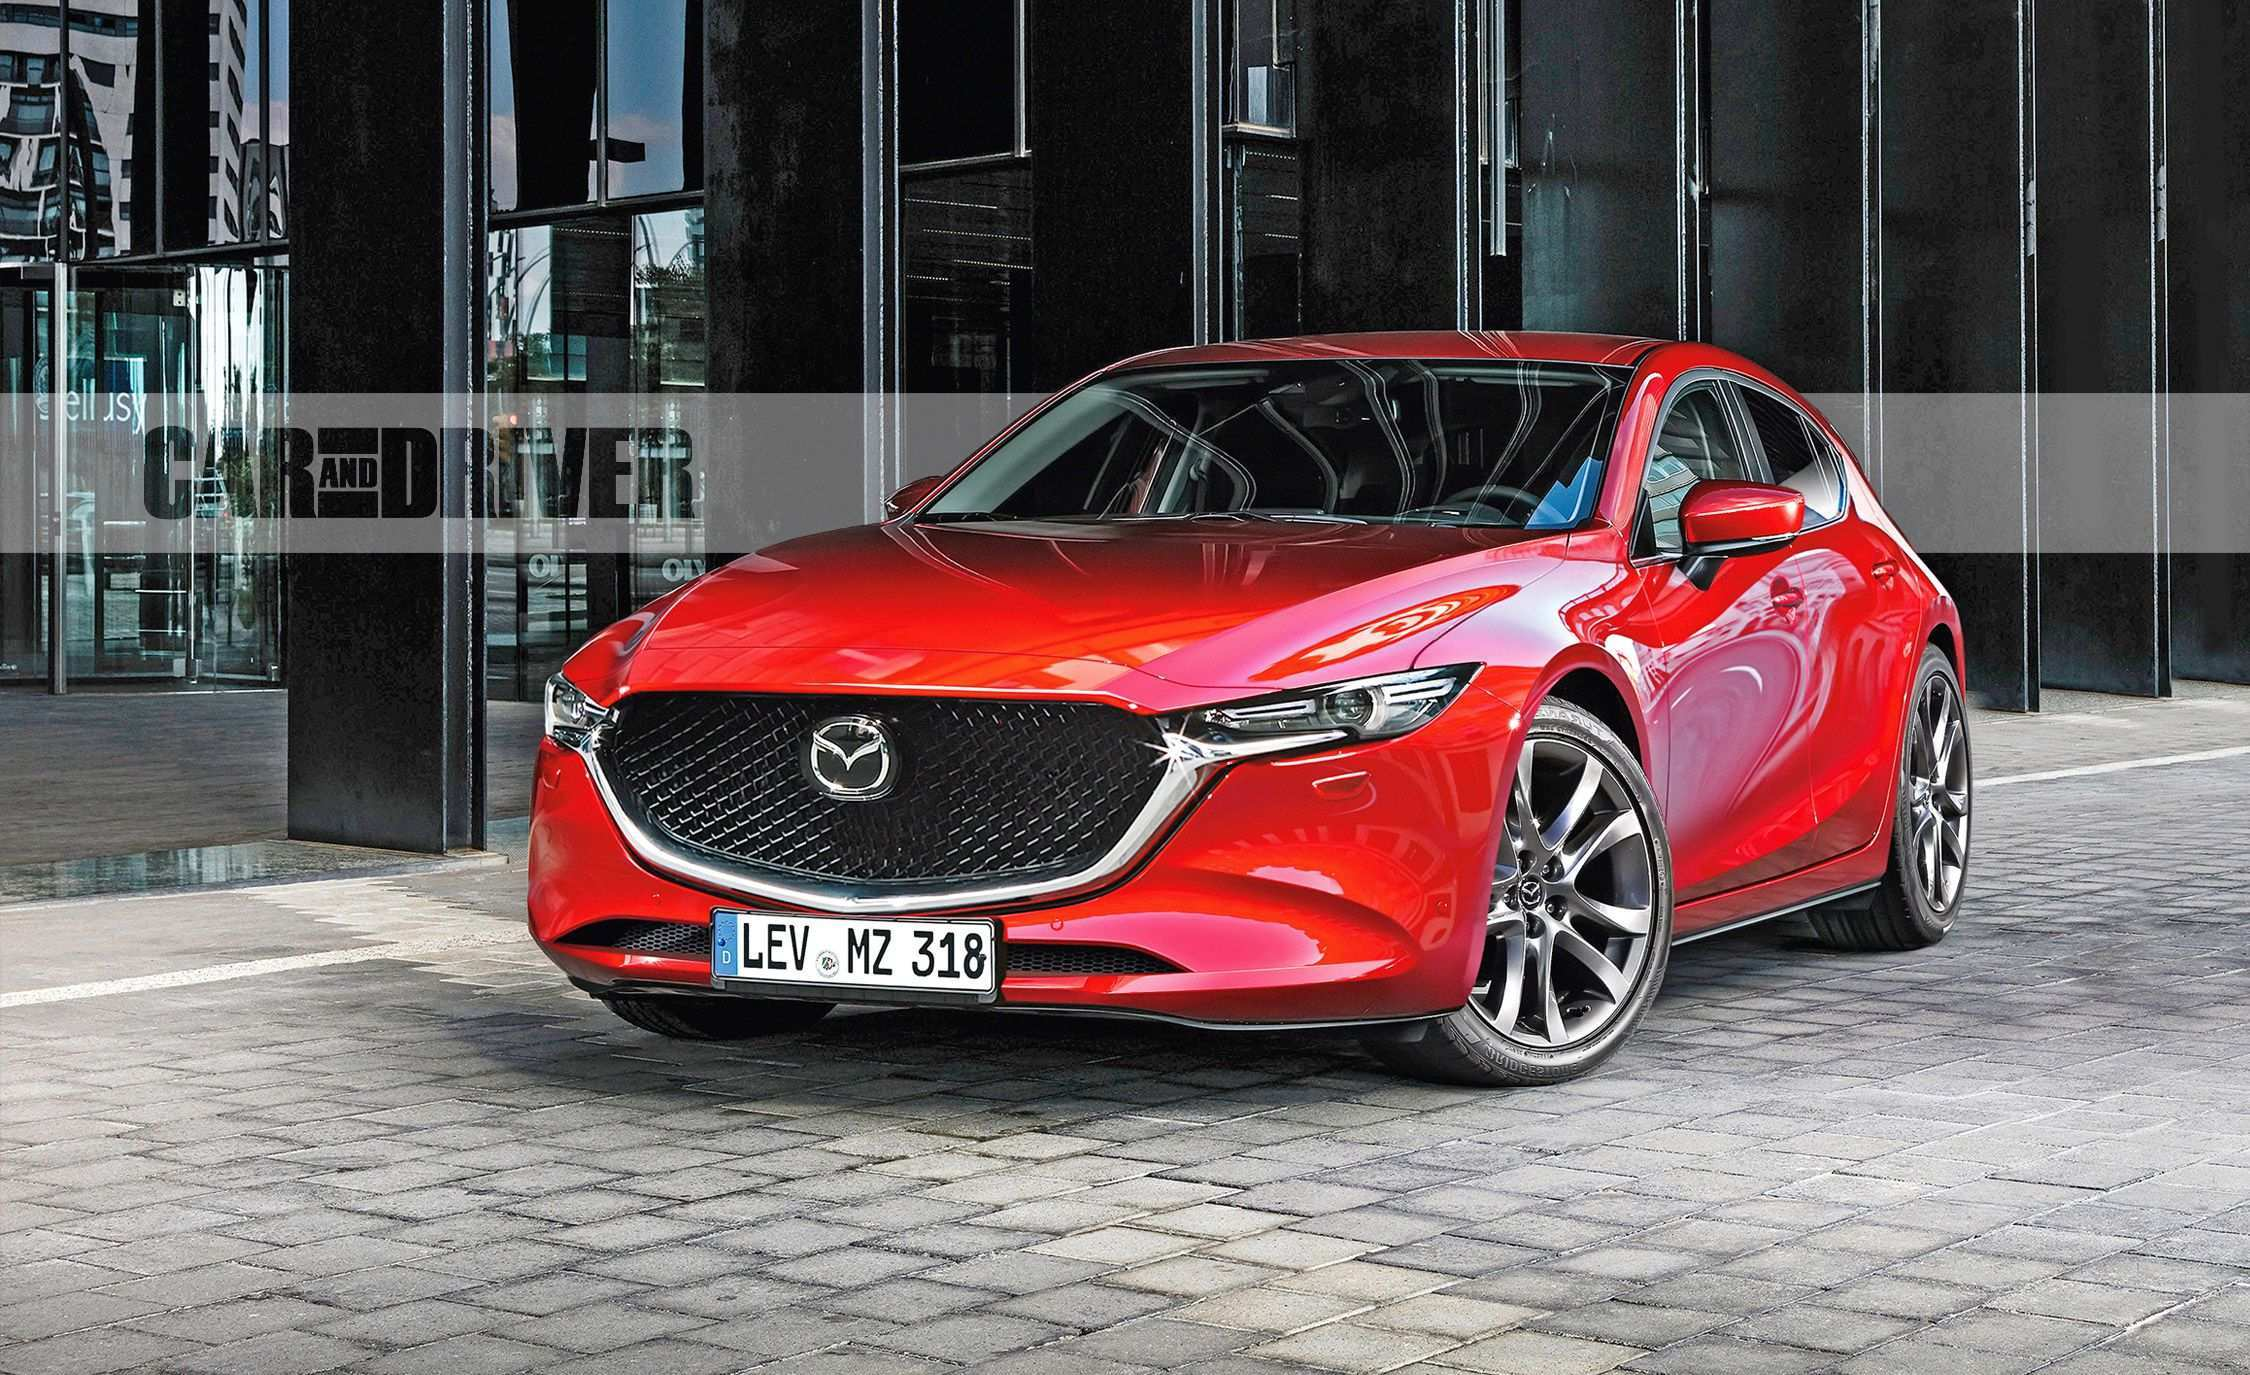 79 The Mazda 2020 Hatchback Wallpaper with Mazda 2020 Hatchback